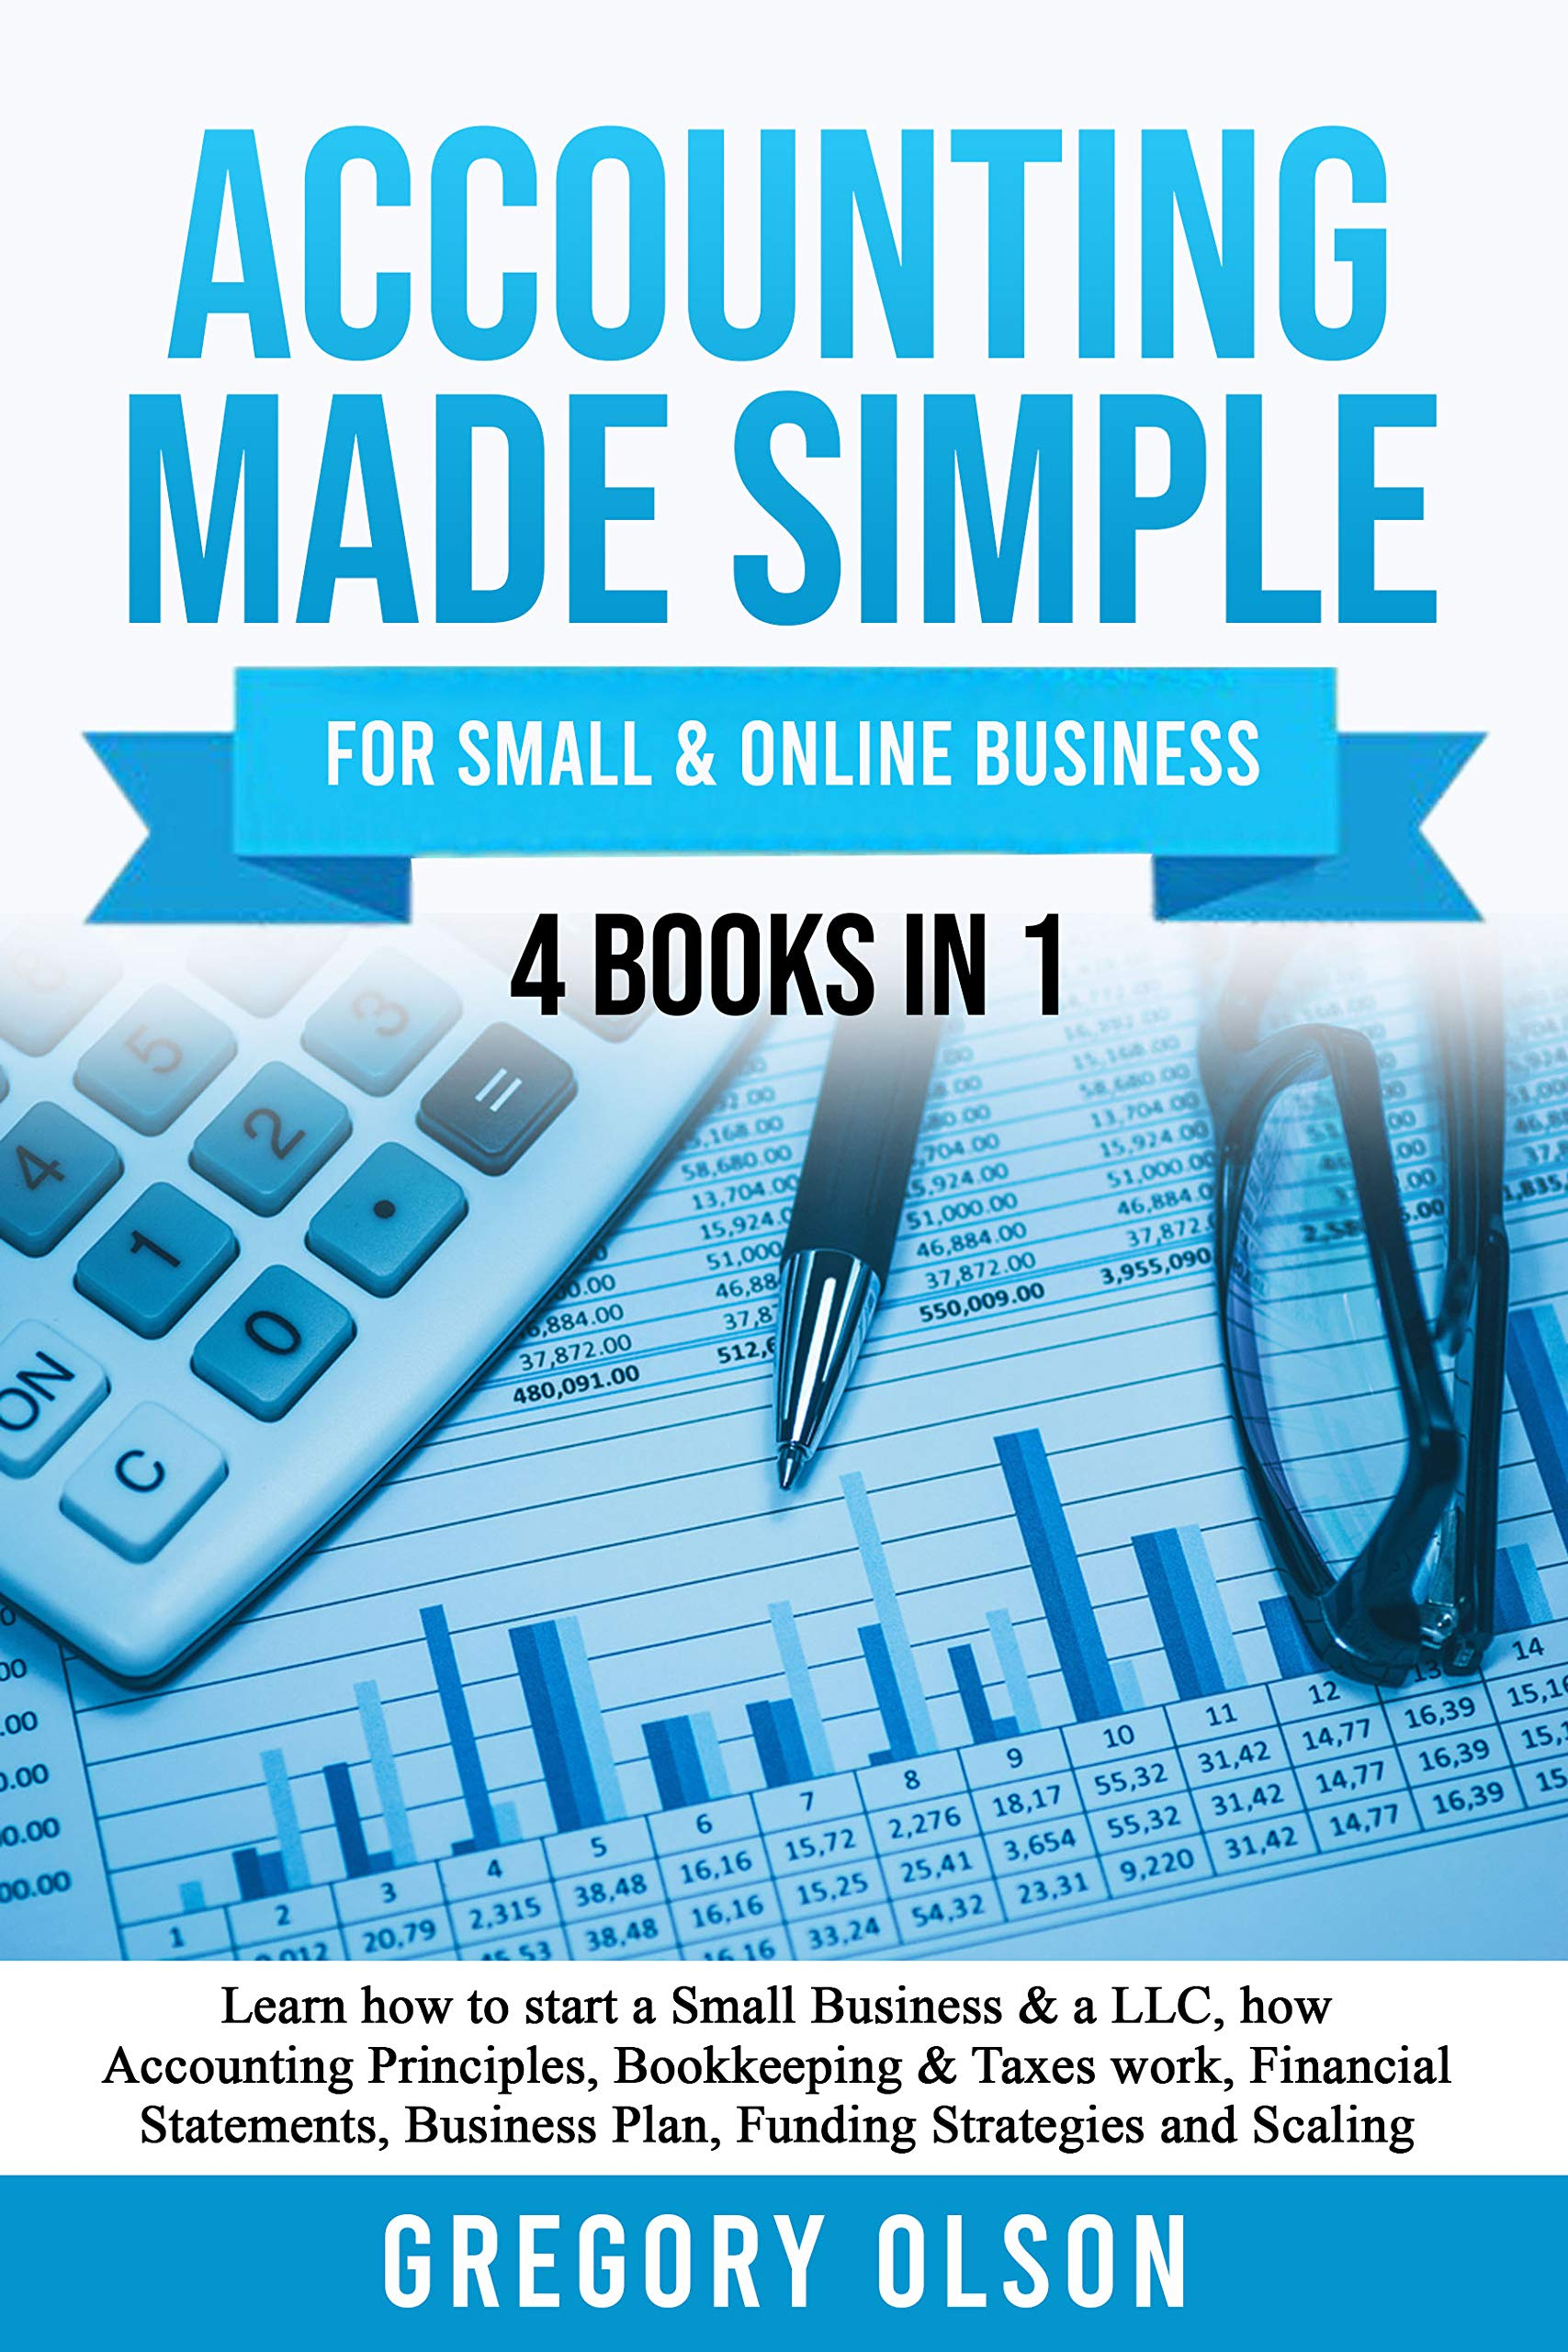 ACCOUNTING MADE SIMPLE: Learn how to start a Small Business & a LLC, how Accounting Principles, Bookkeeping & Taxes work, Financial Statements, Business Plan, Funding Strategies and Scaling